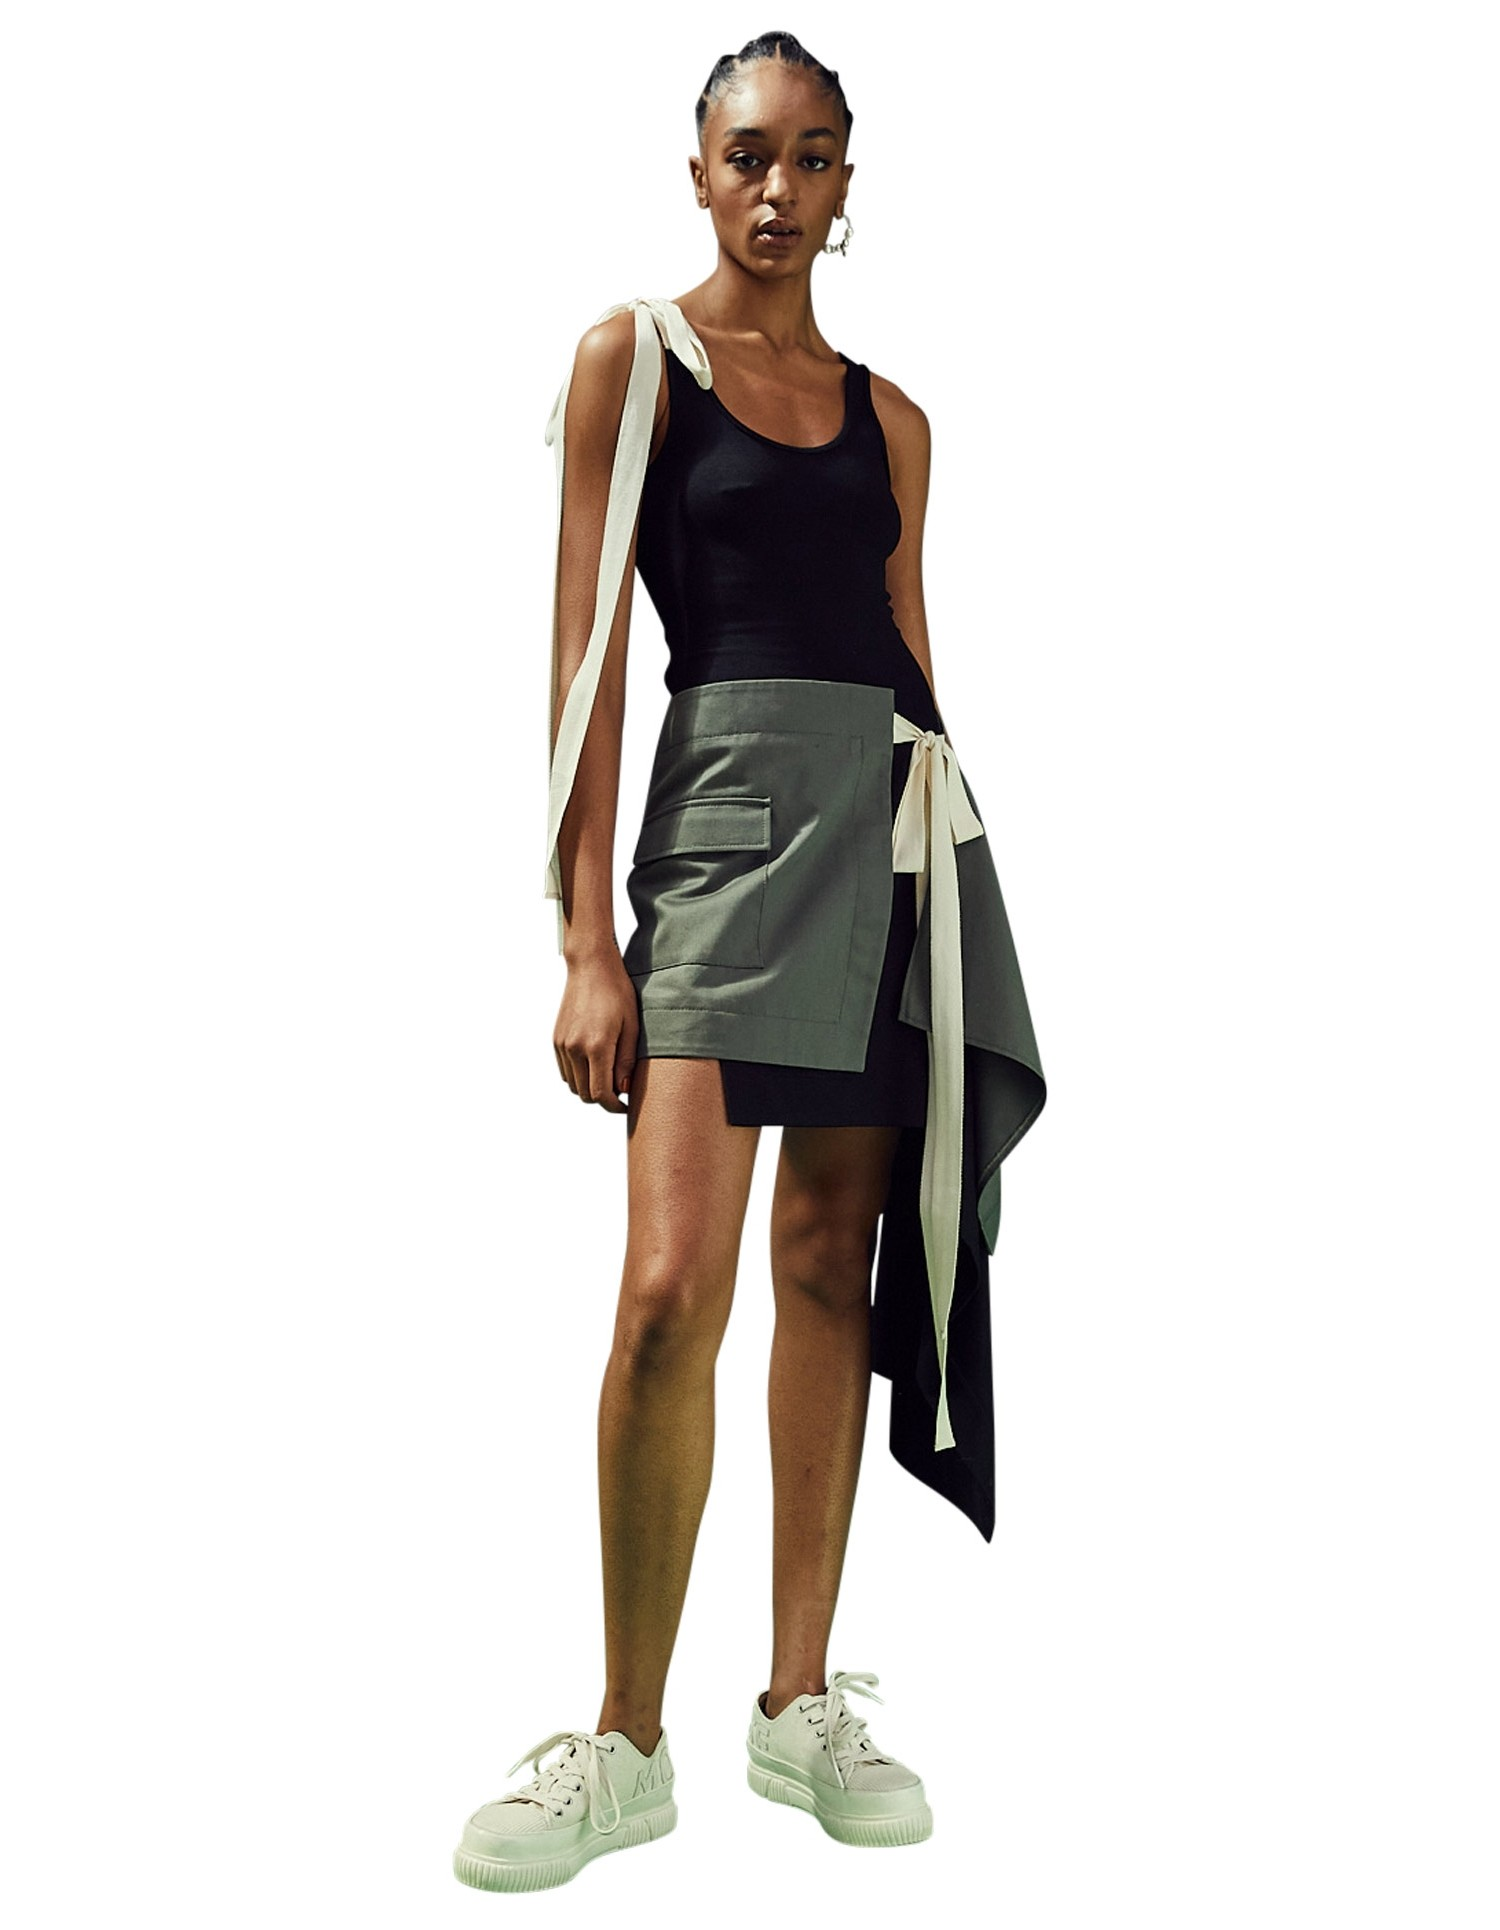 MONSE T-Skirt Dress in Black and Olive on Model No Background Front